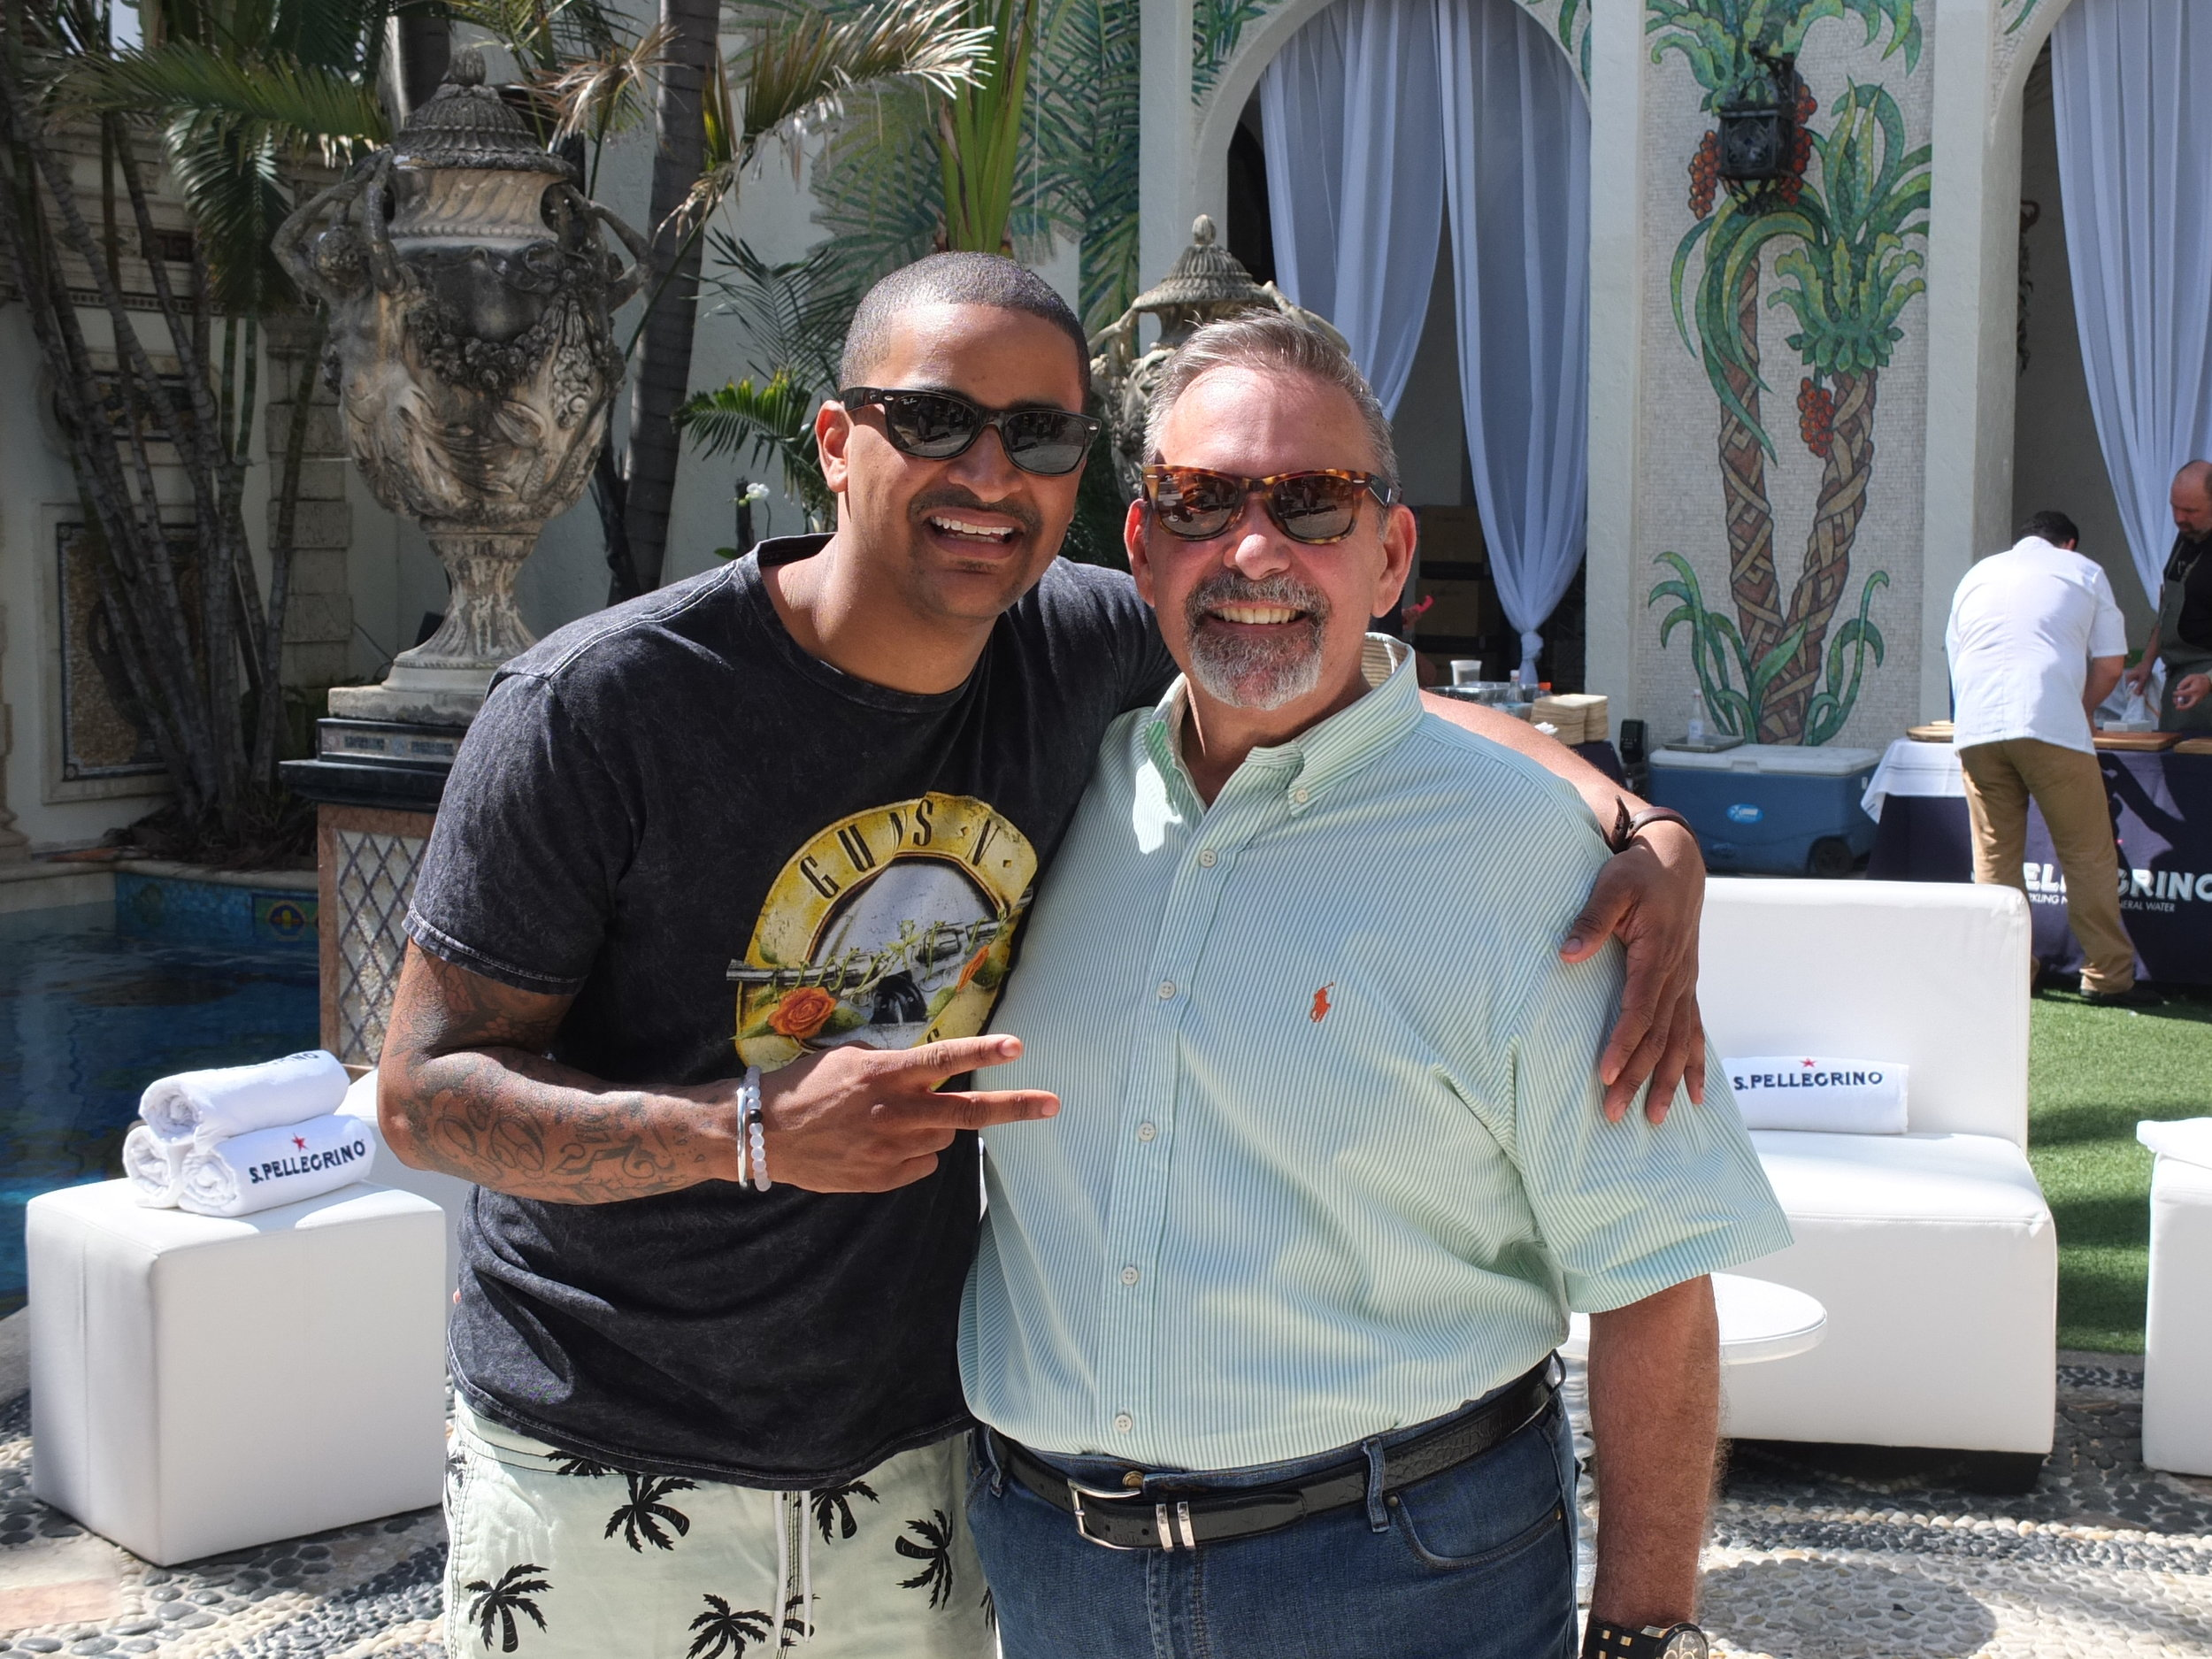 Chef JJ with David Johnson, TICED Event Planner who managed production of the event.